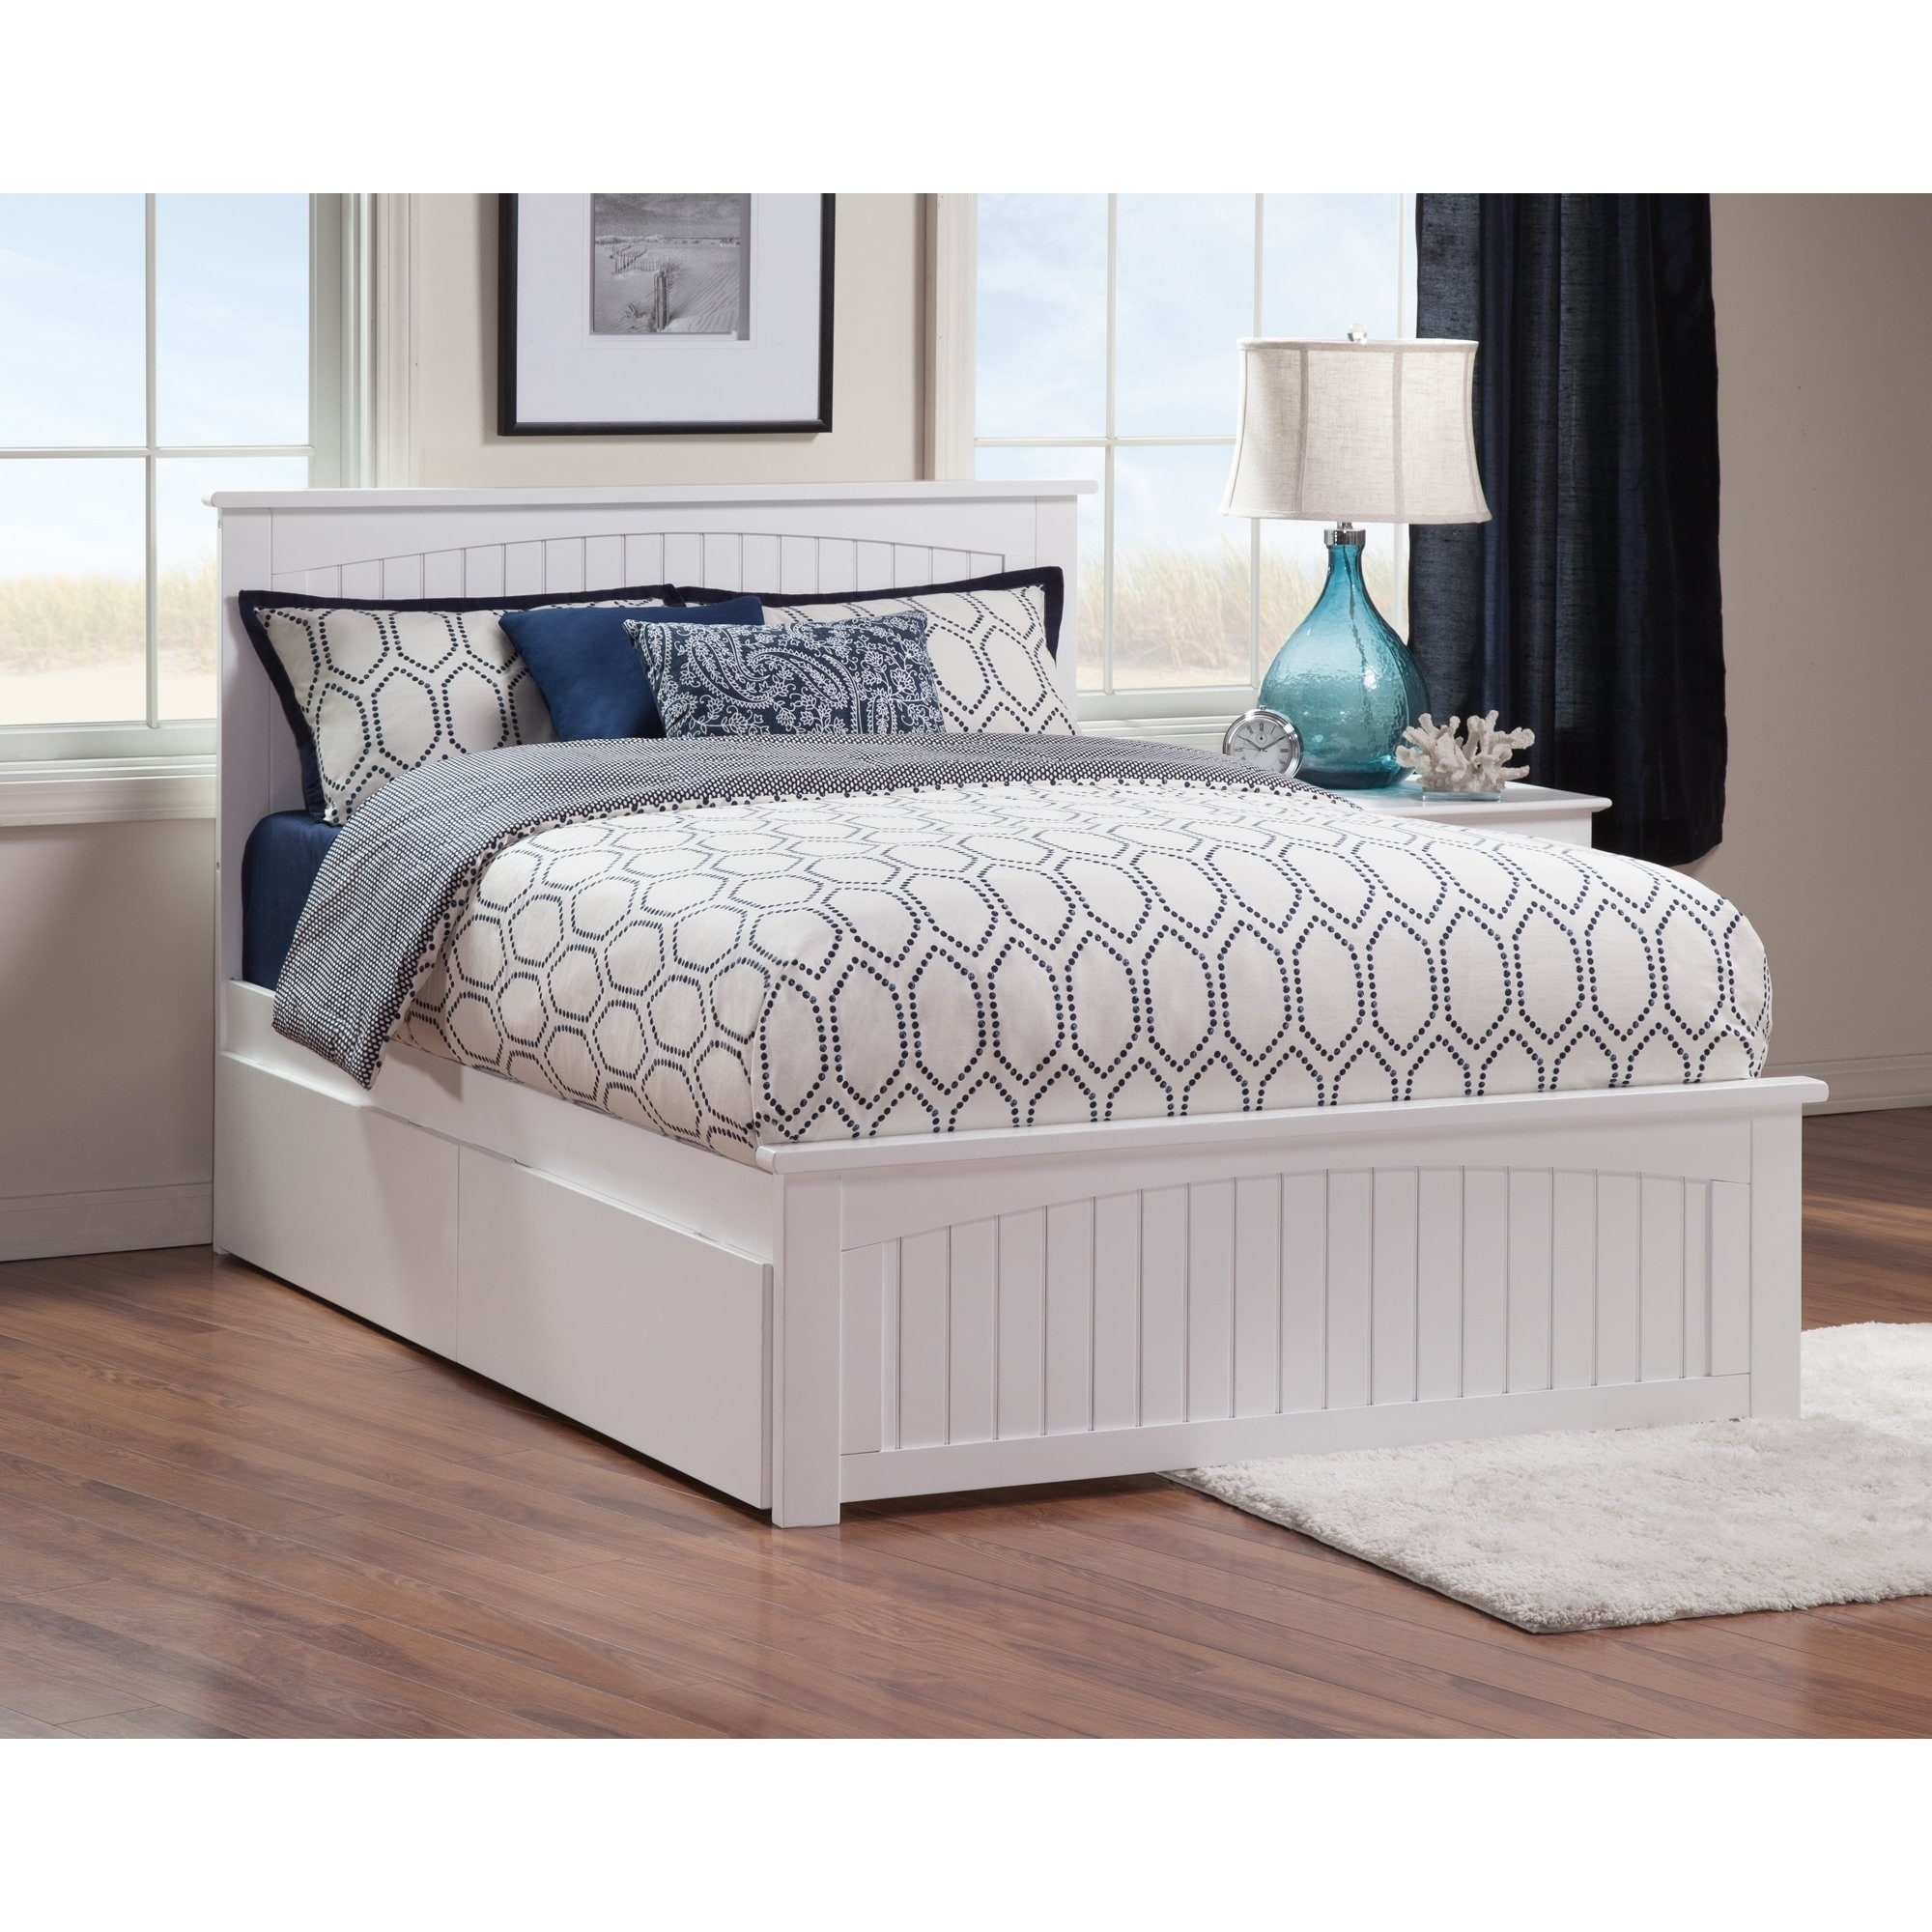 Shop Black Friday Deals On Nantucket White Queen Platform Bed With 2 Under Bed Drawers Overstock 13370595